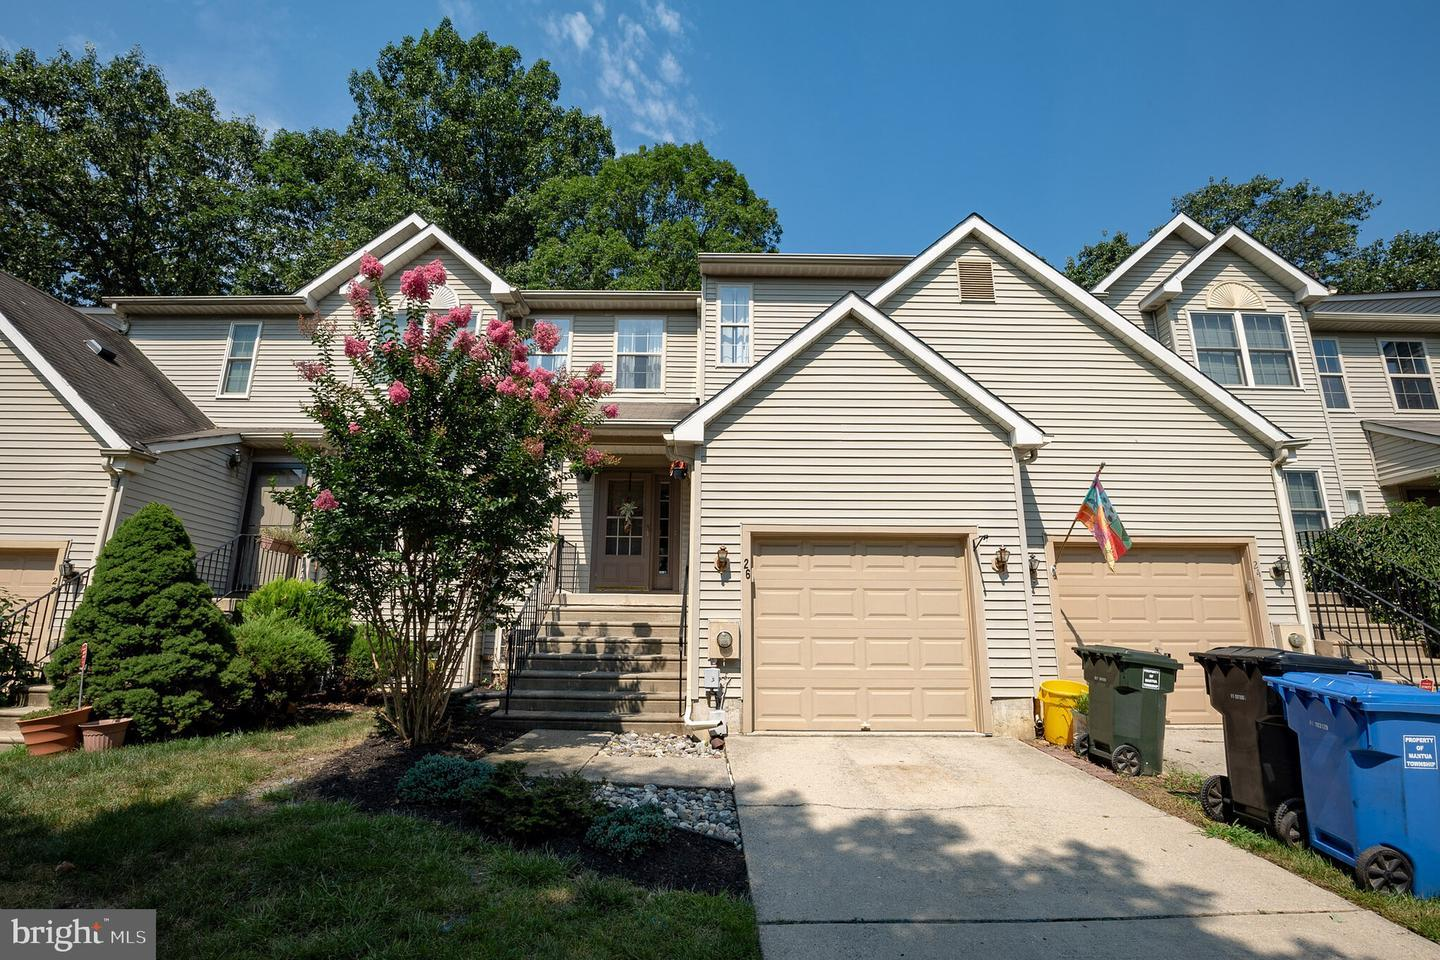 Local Real Estate: Homes for Sale — Mantua, NJ — Coldwell Banker